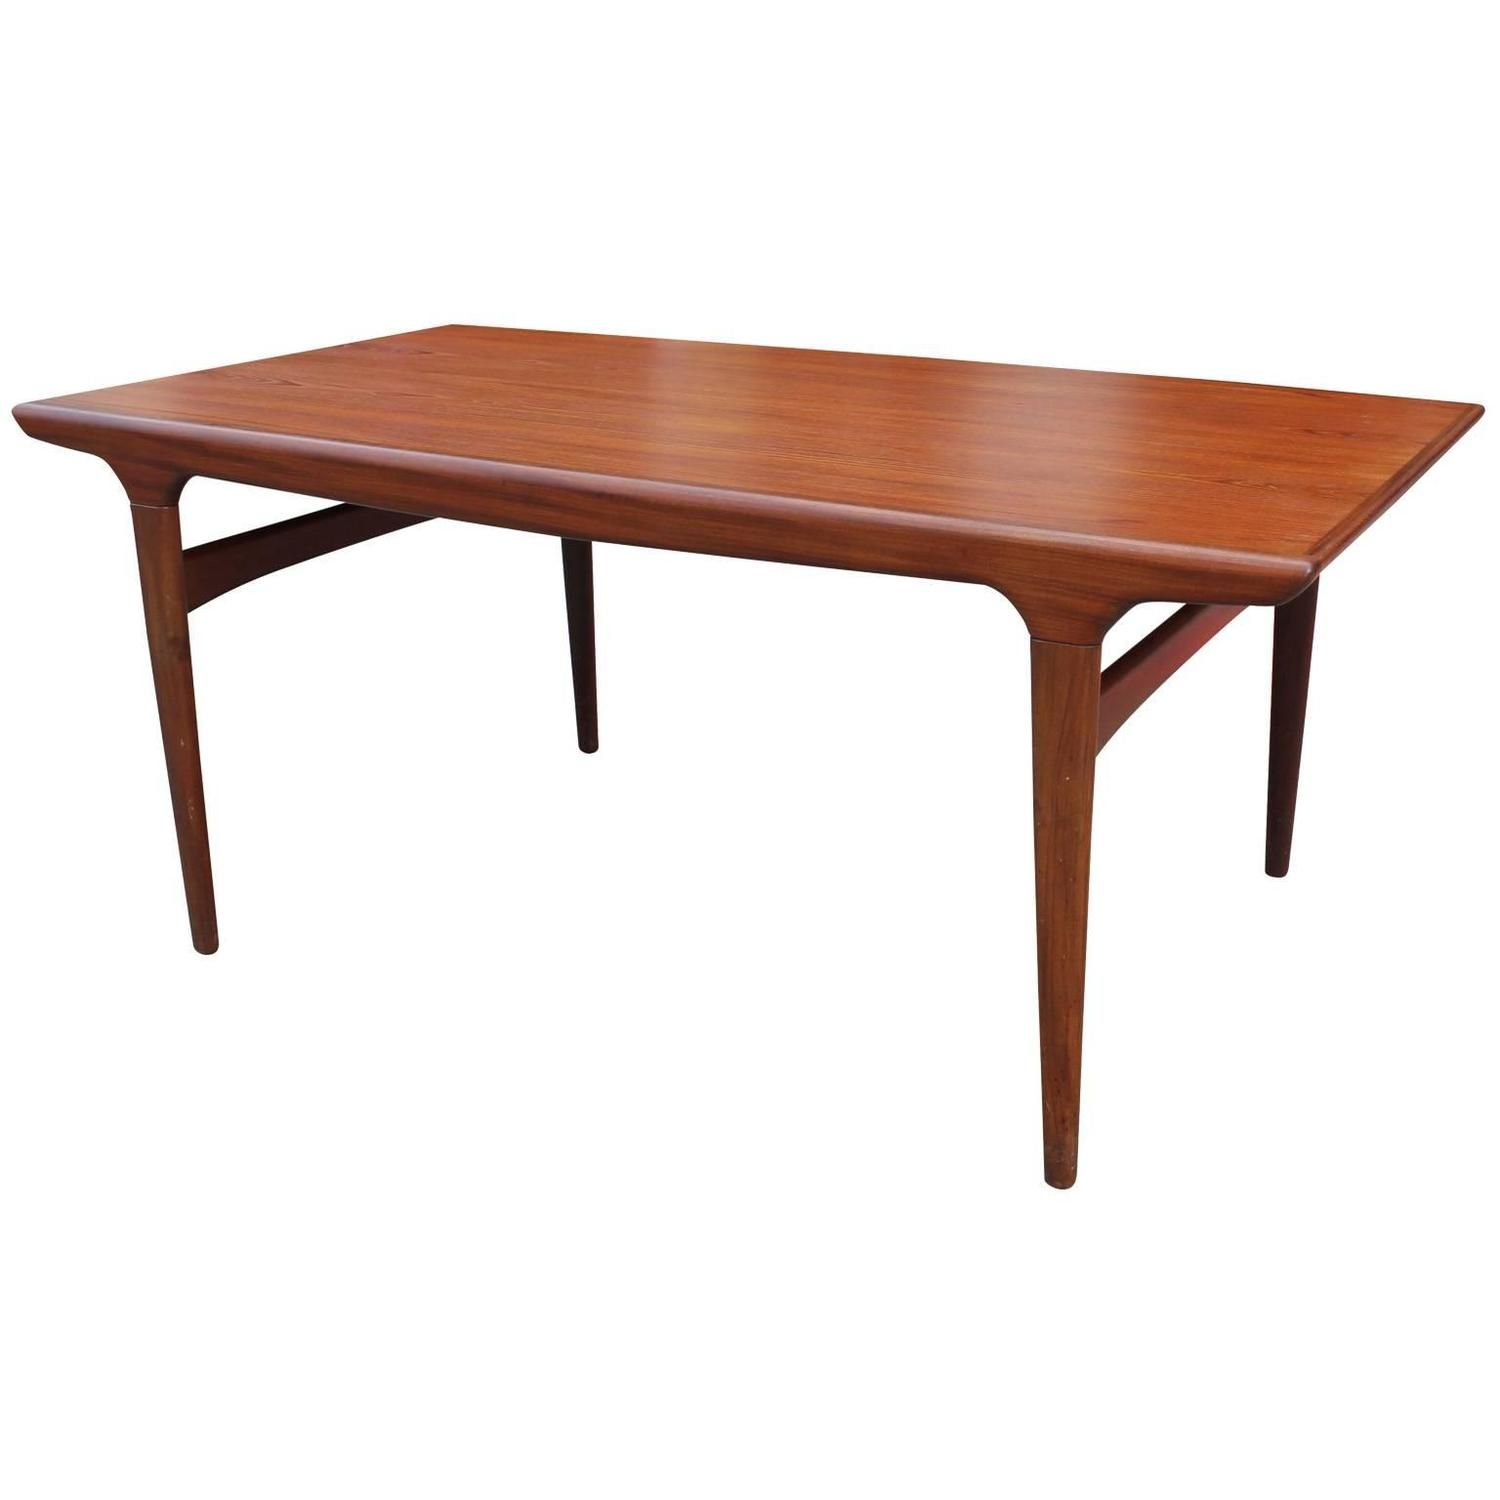 Elegant Danish Teak Dining Table With A Cantilevered Leaf Teak Dining Table Danish Modern Dining Table Danish Dining Table